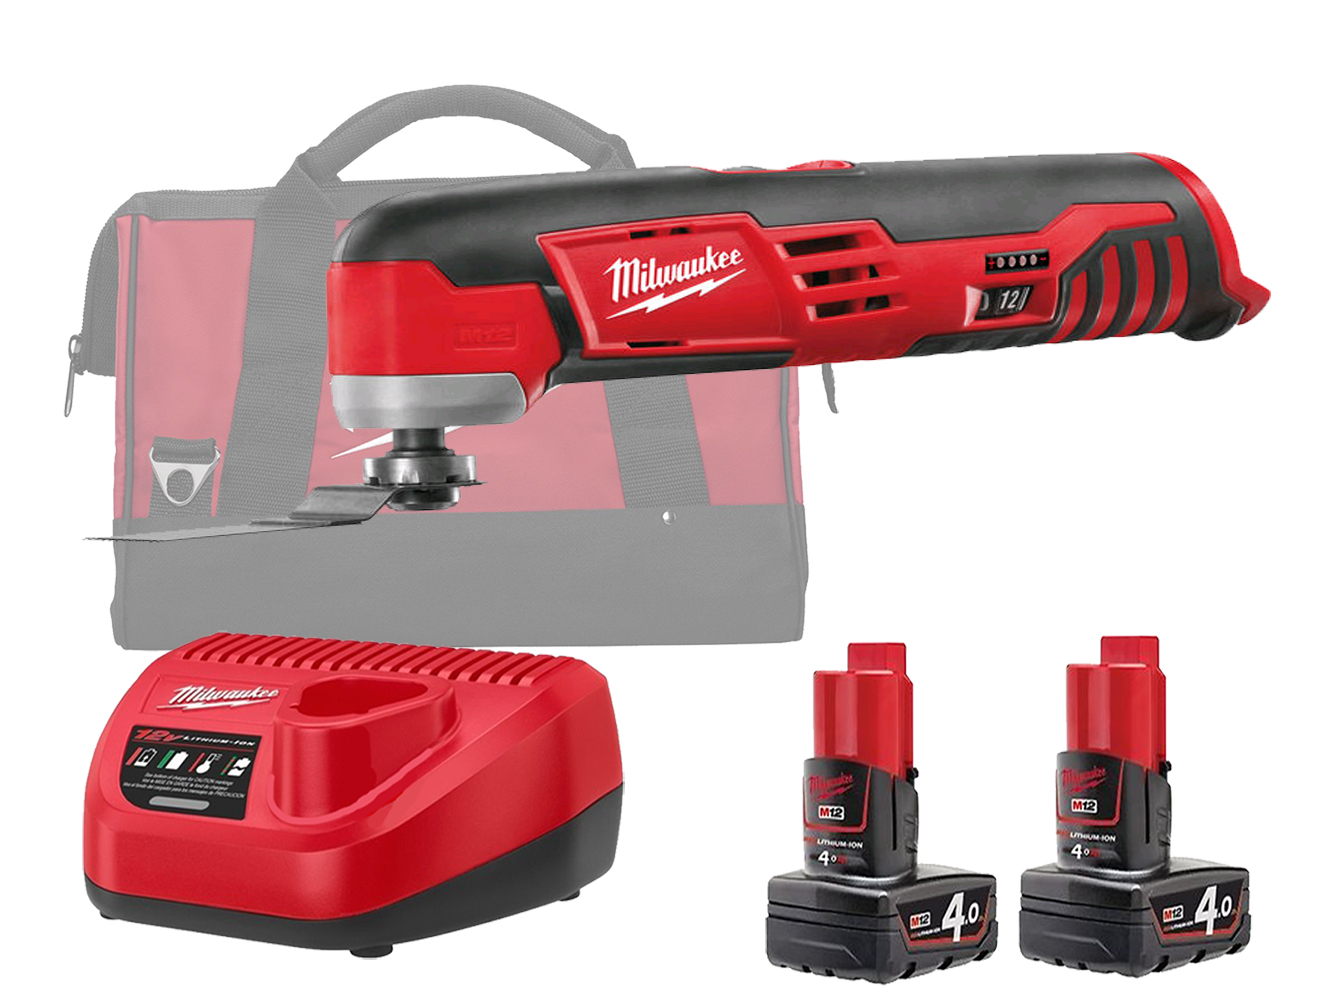 MILWAUKEE 12V COMPACT OSCILLATING MULTI TOOL - C12MT  - 4.0AH PACK